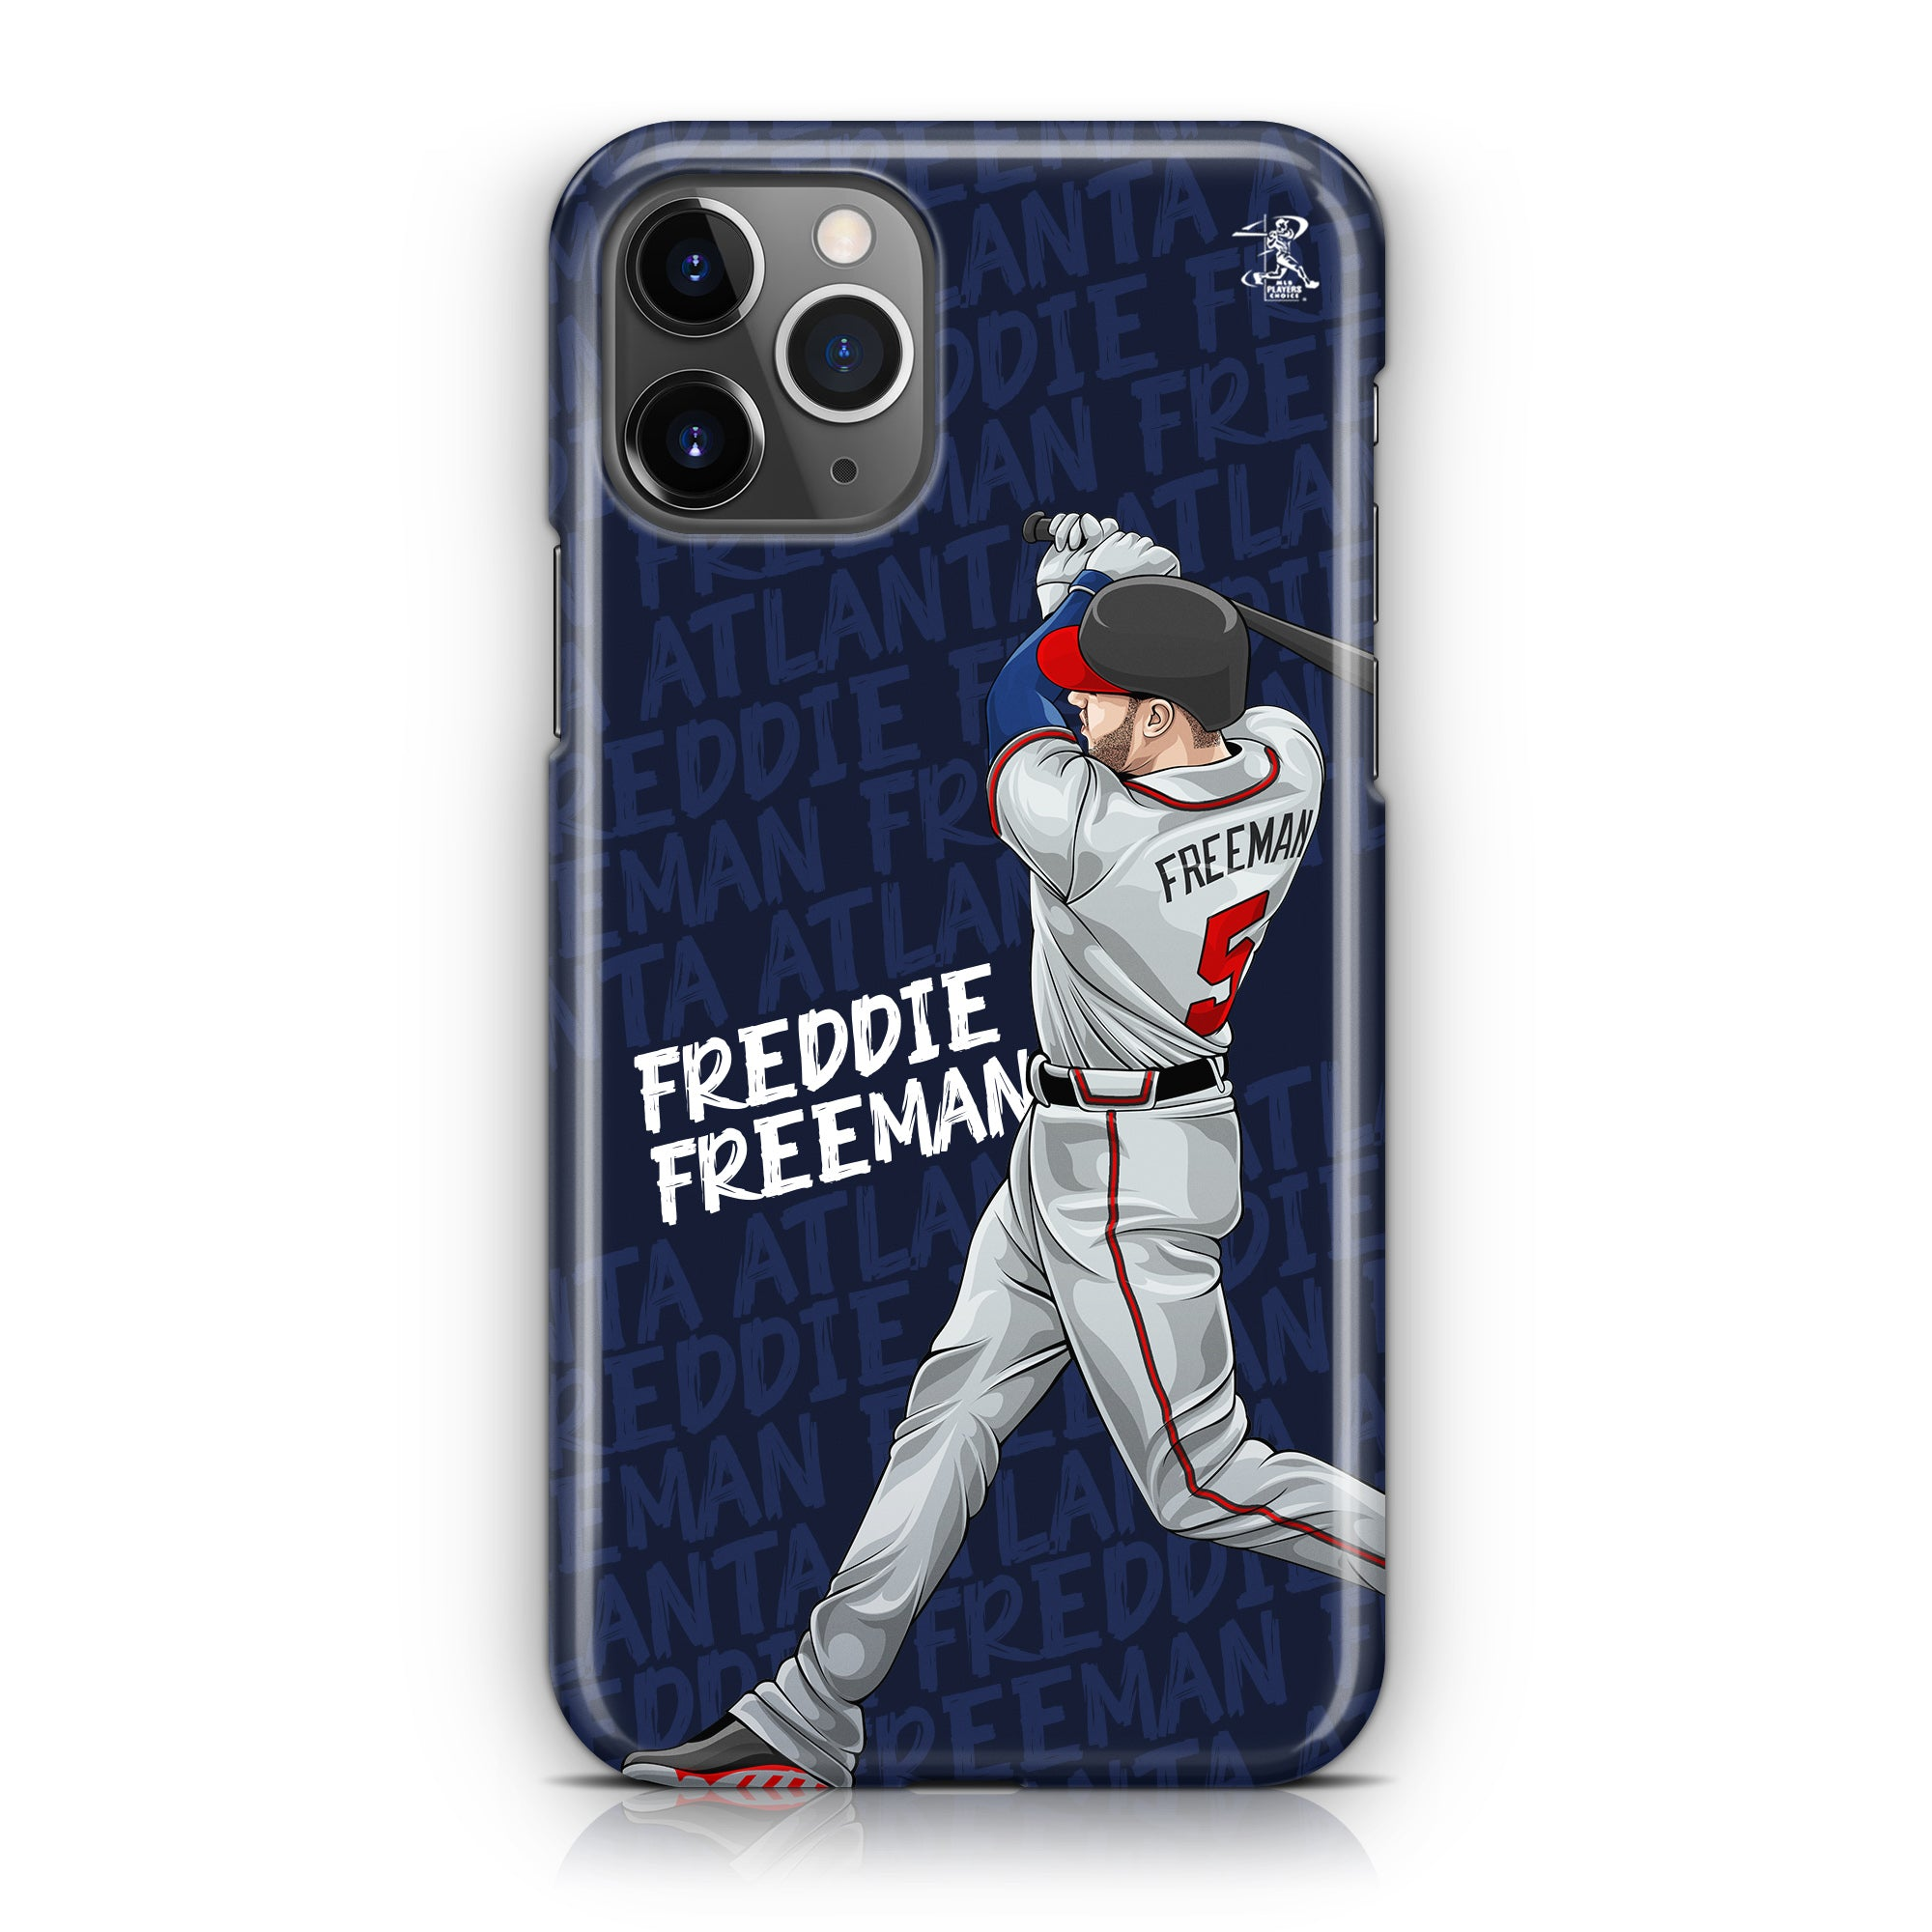 Freeman Star Series 2.0 Case